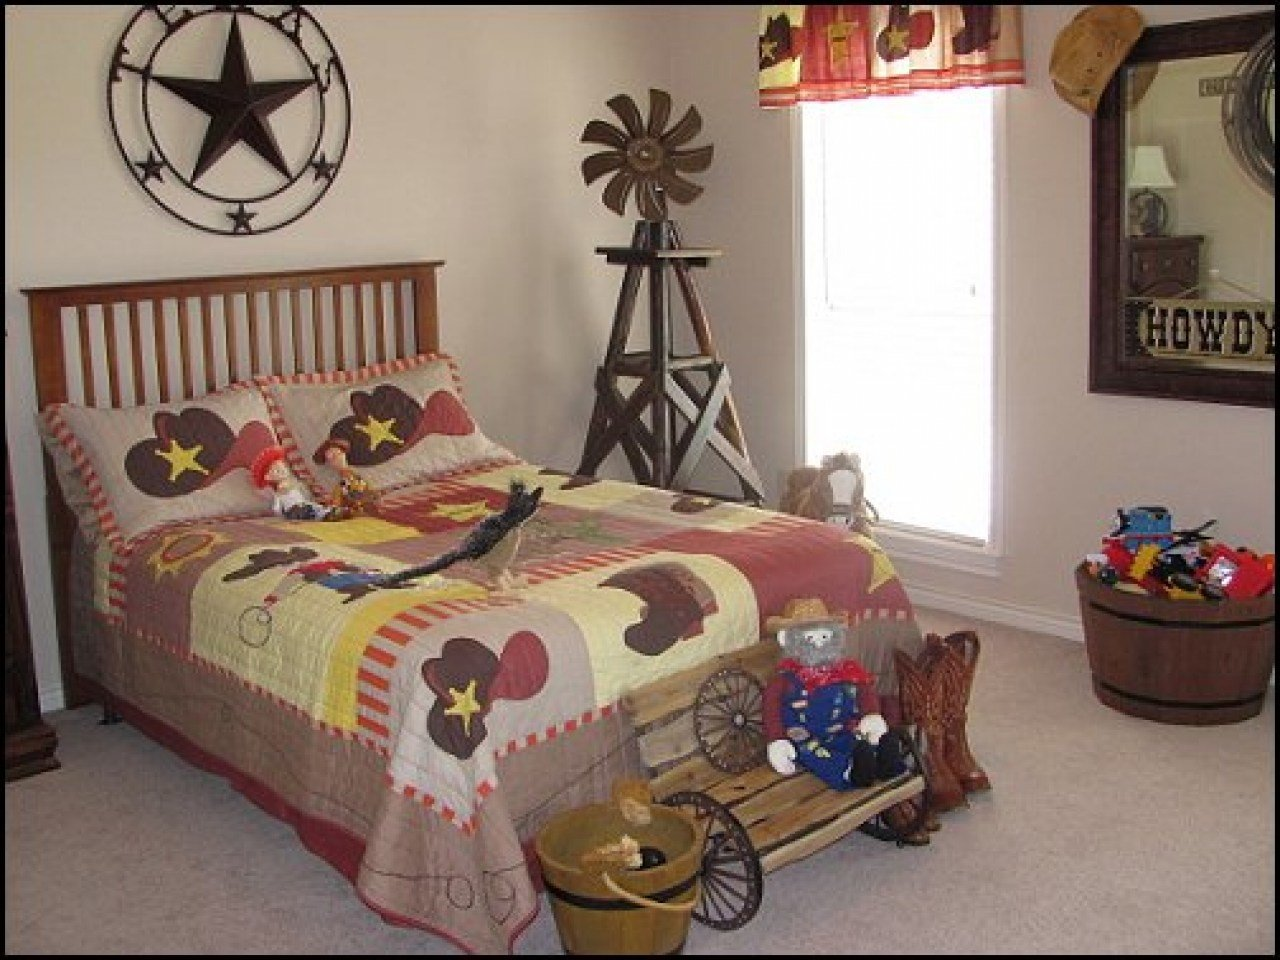 Best Bedroom Bedding And Decor Cowboy Bedroom Decorating Ideas With Pictures